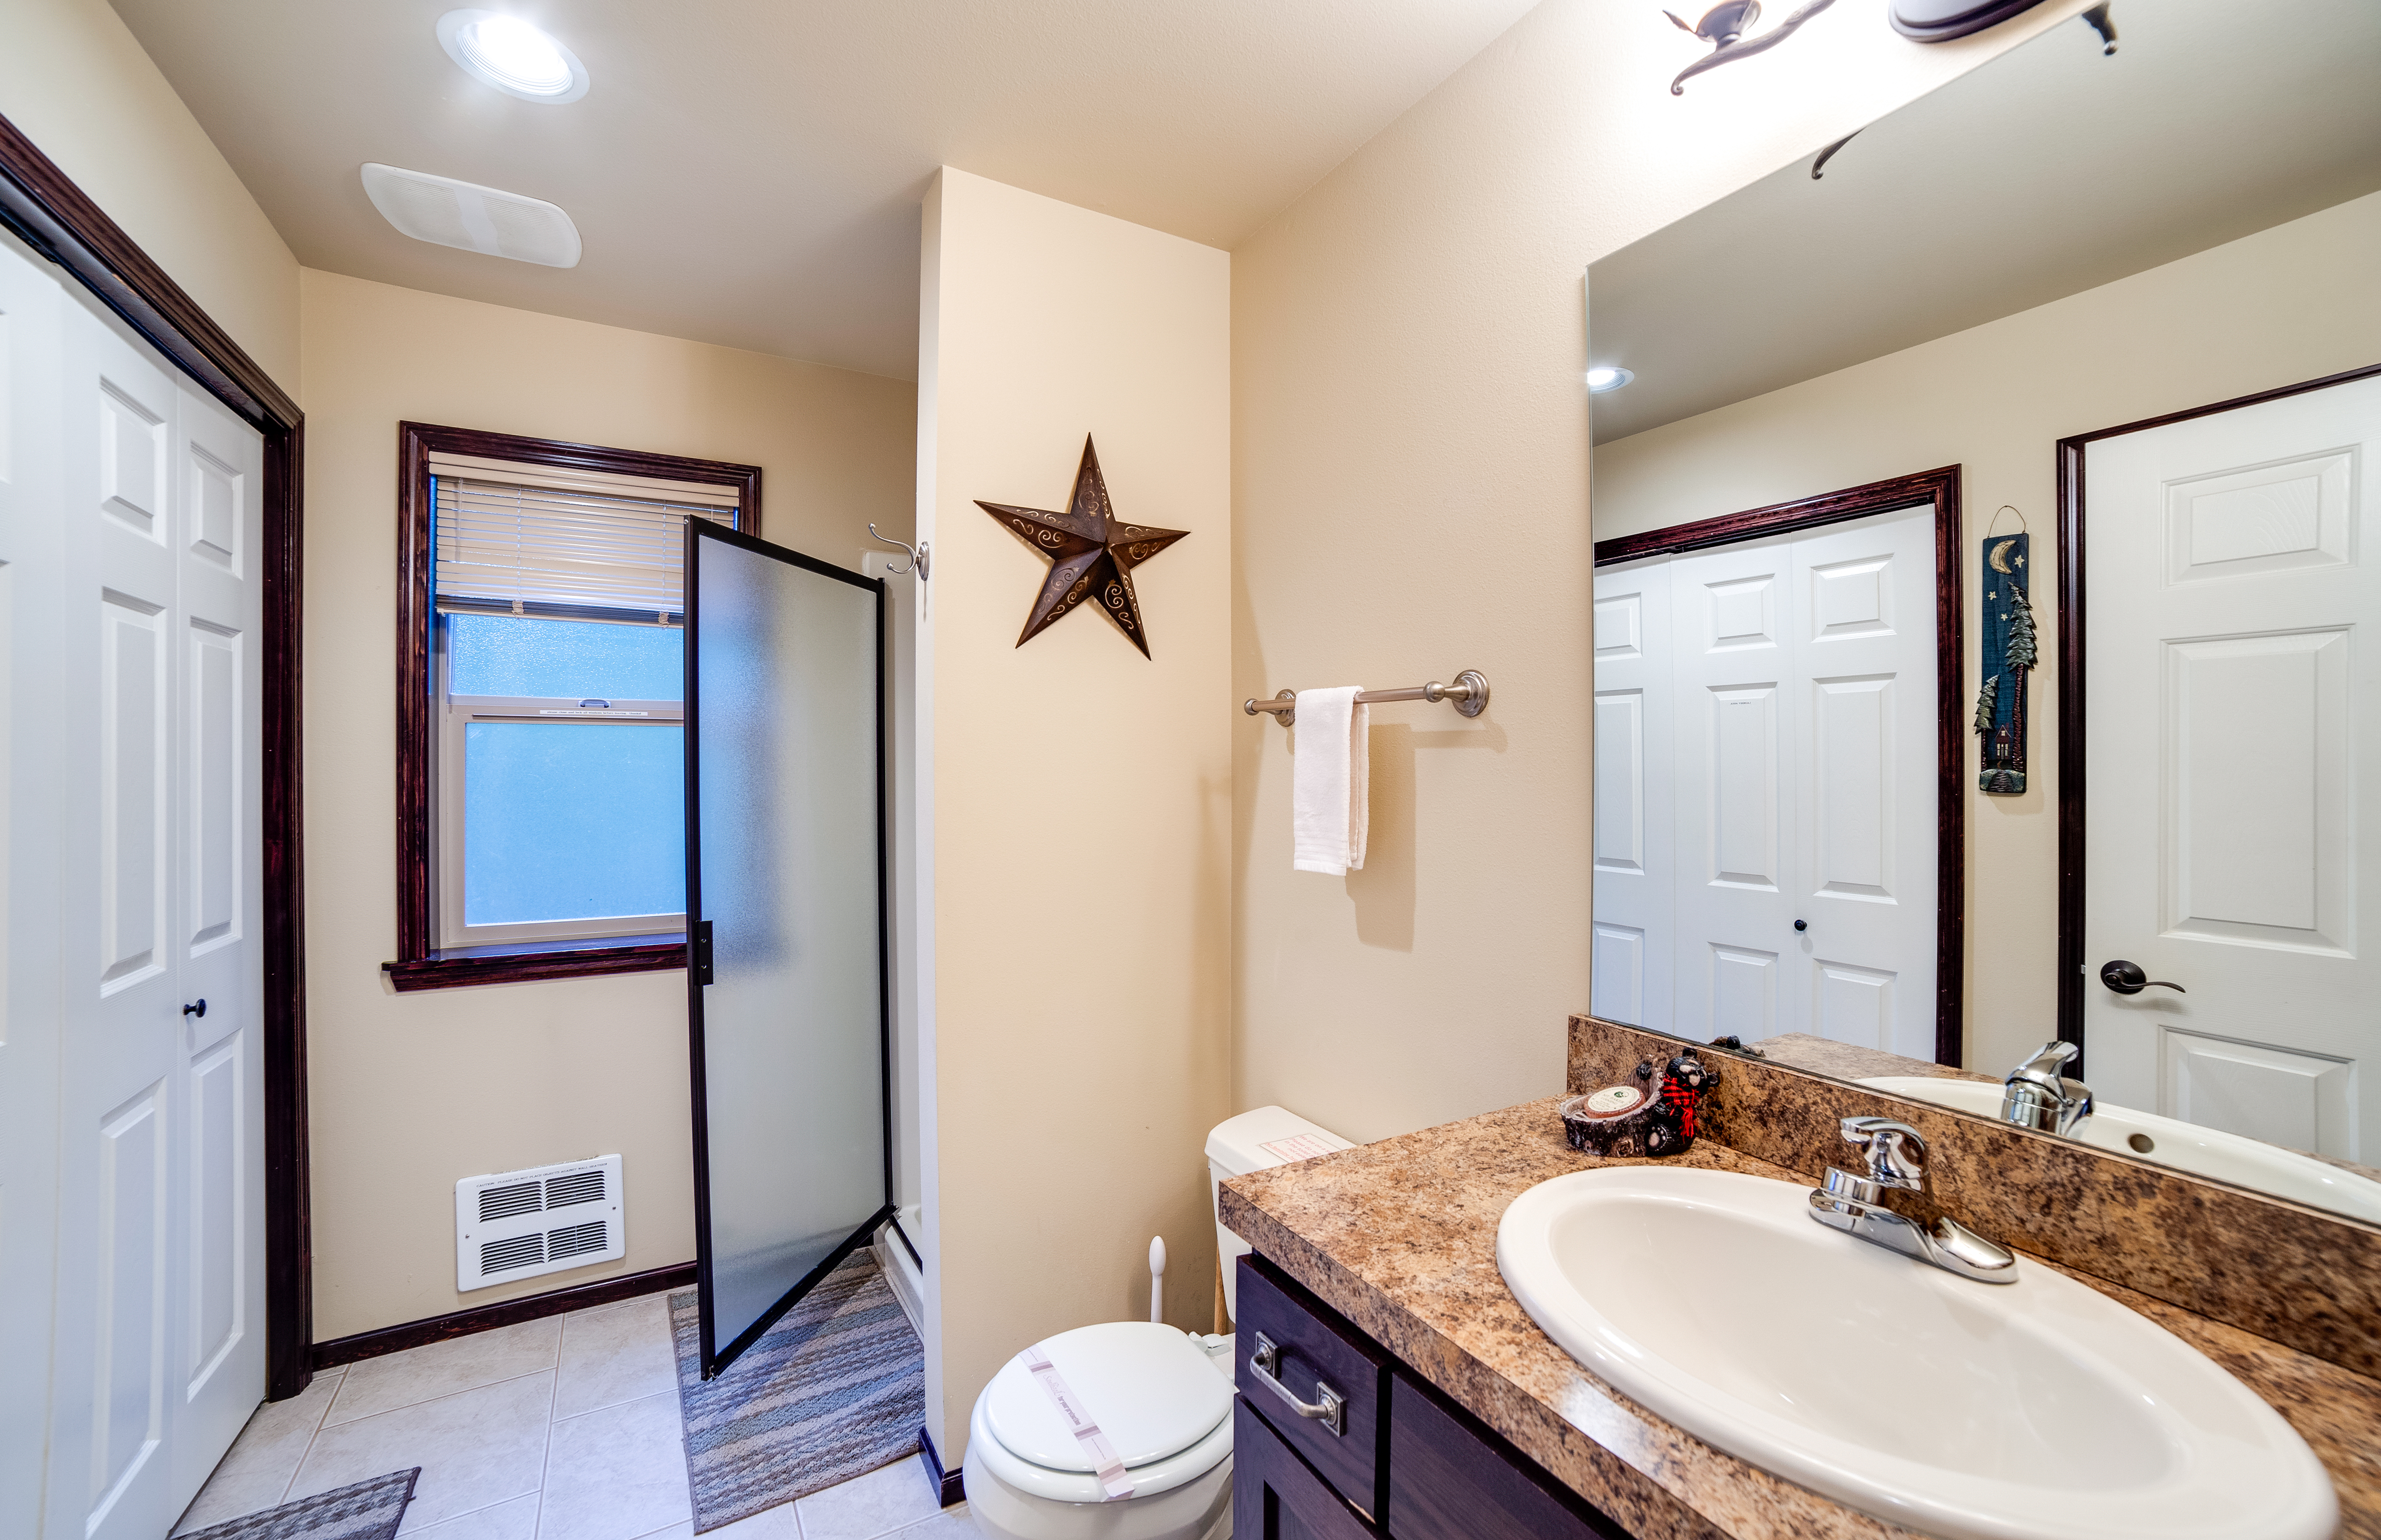 Main bathroom with shower and laundry area